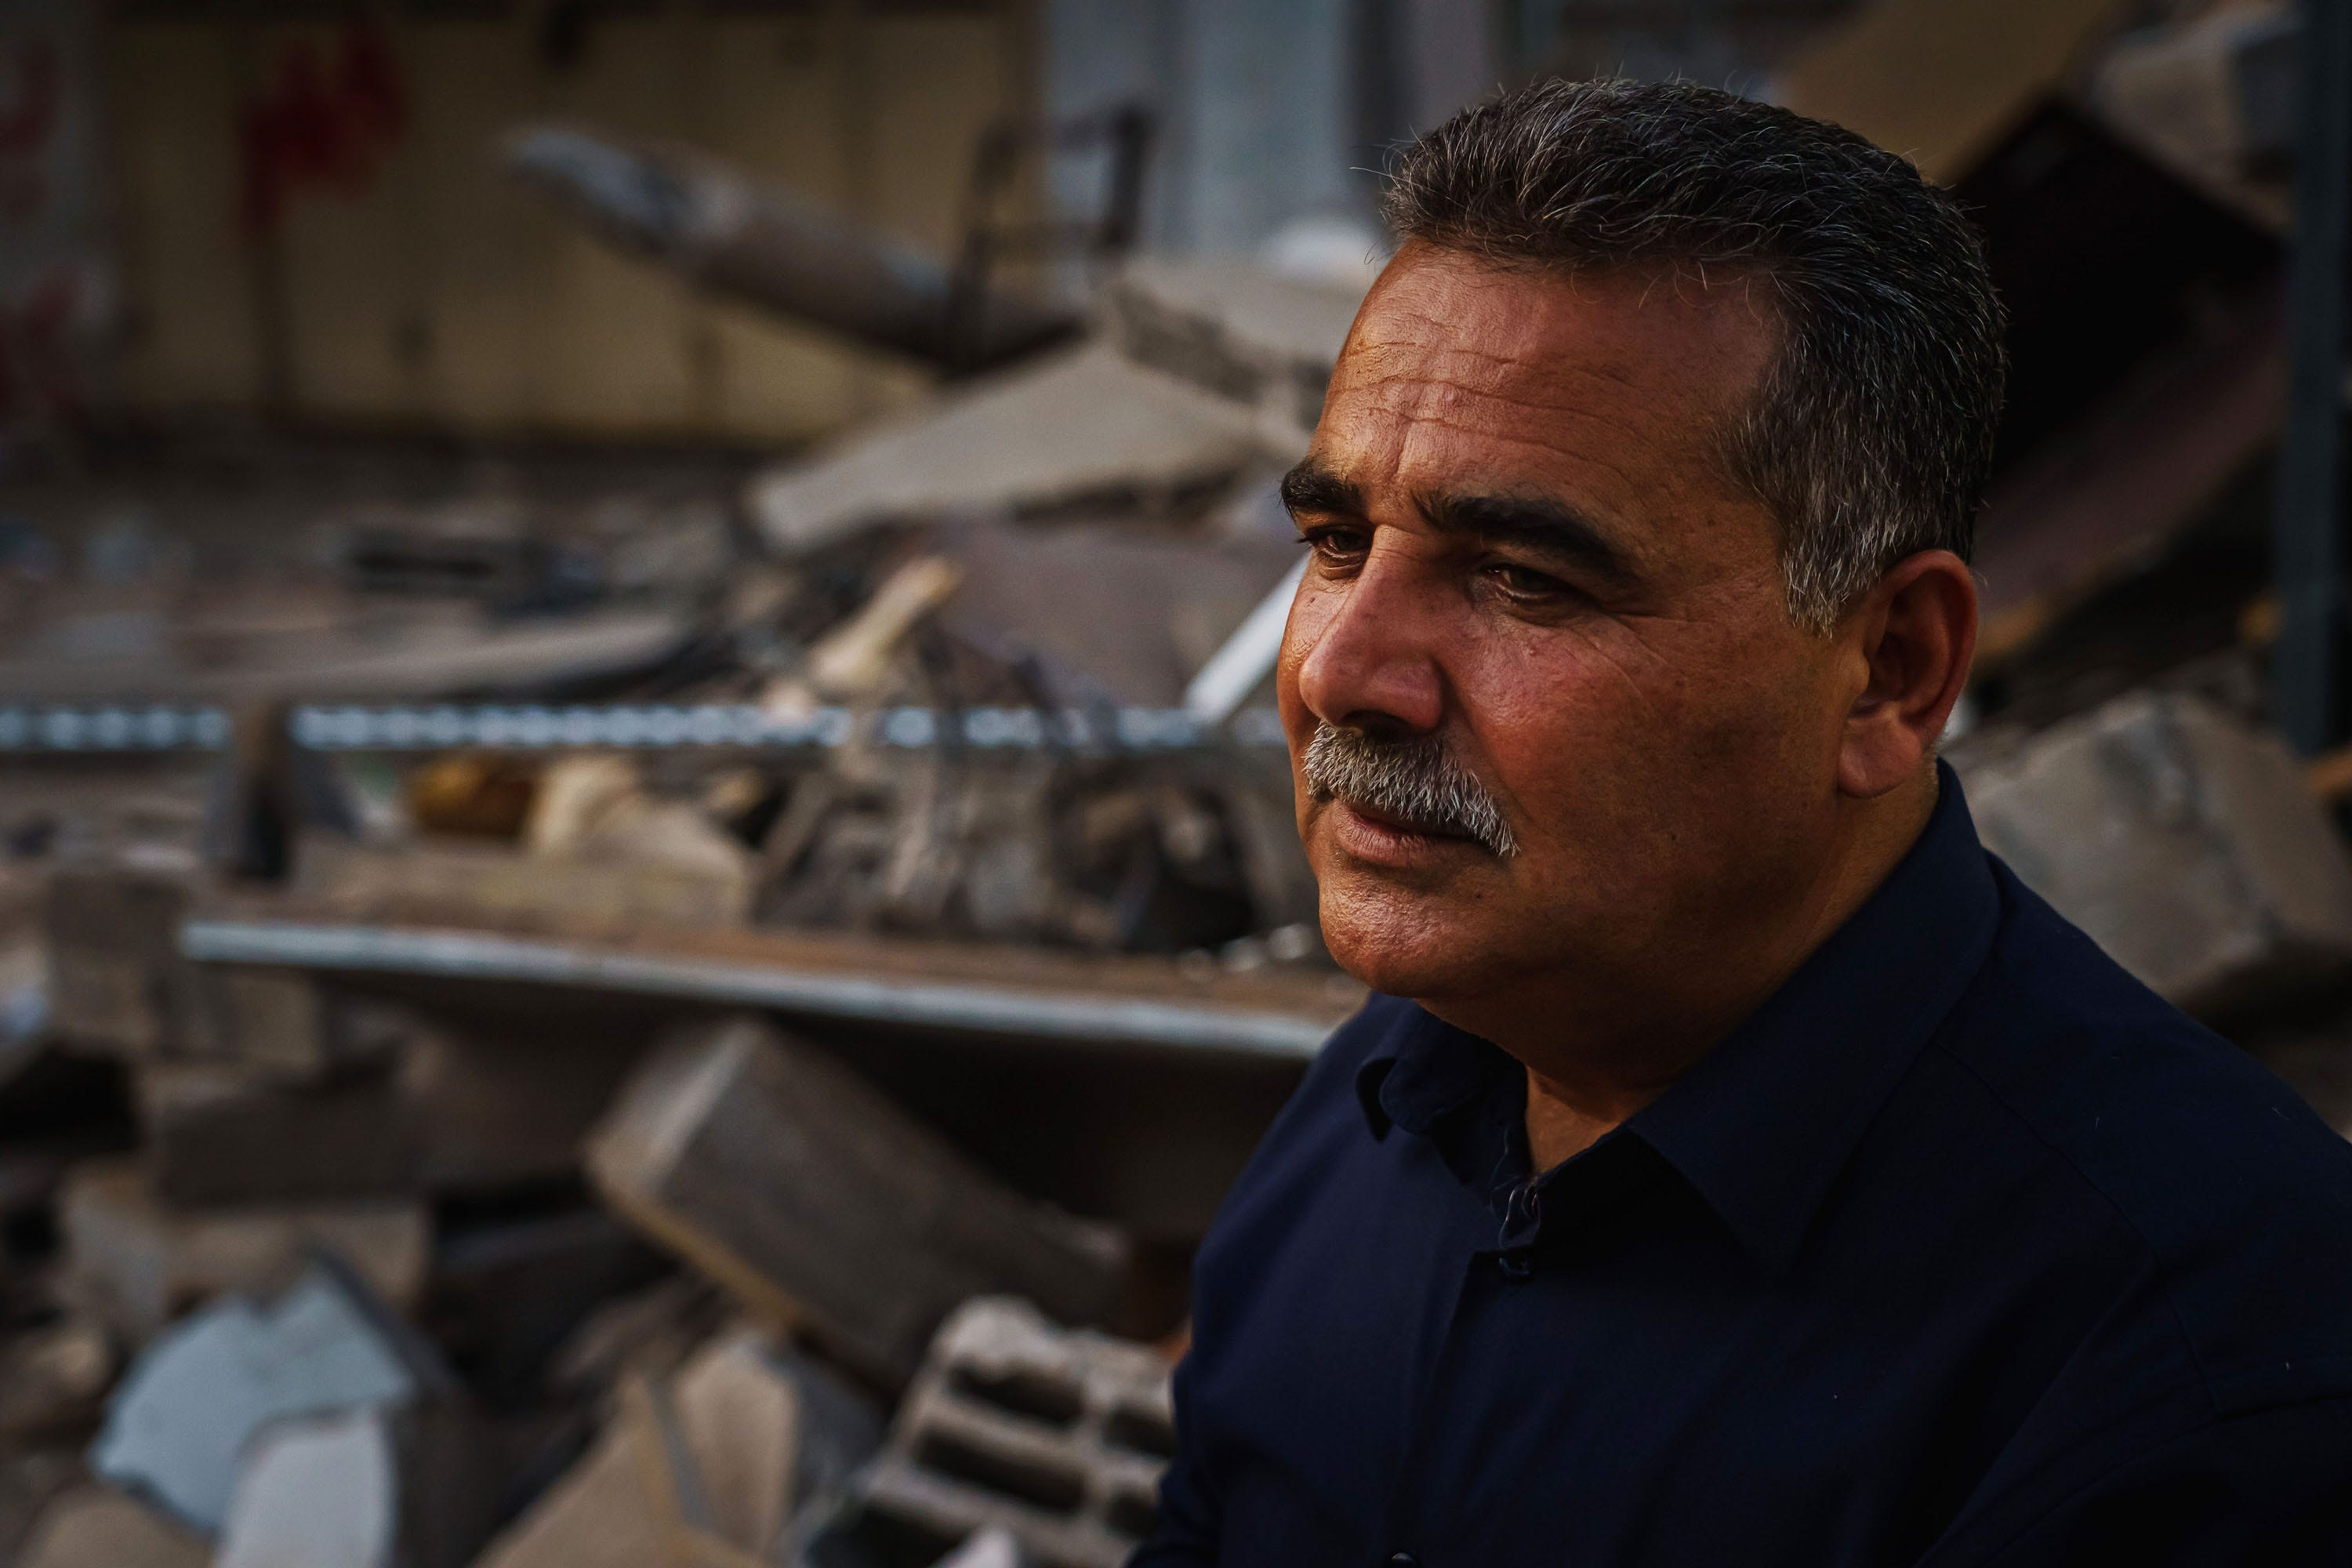 He watched 2 missiles destroy his bookshop. 'It was like I had my child in there' 2